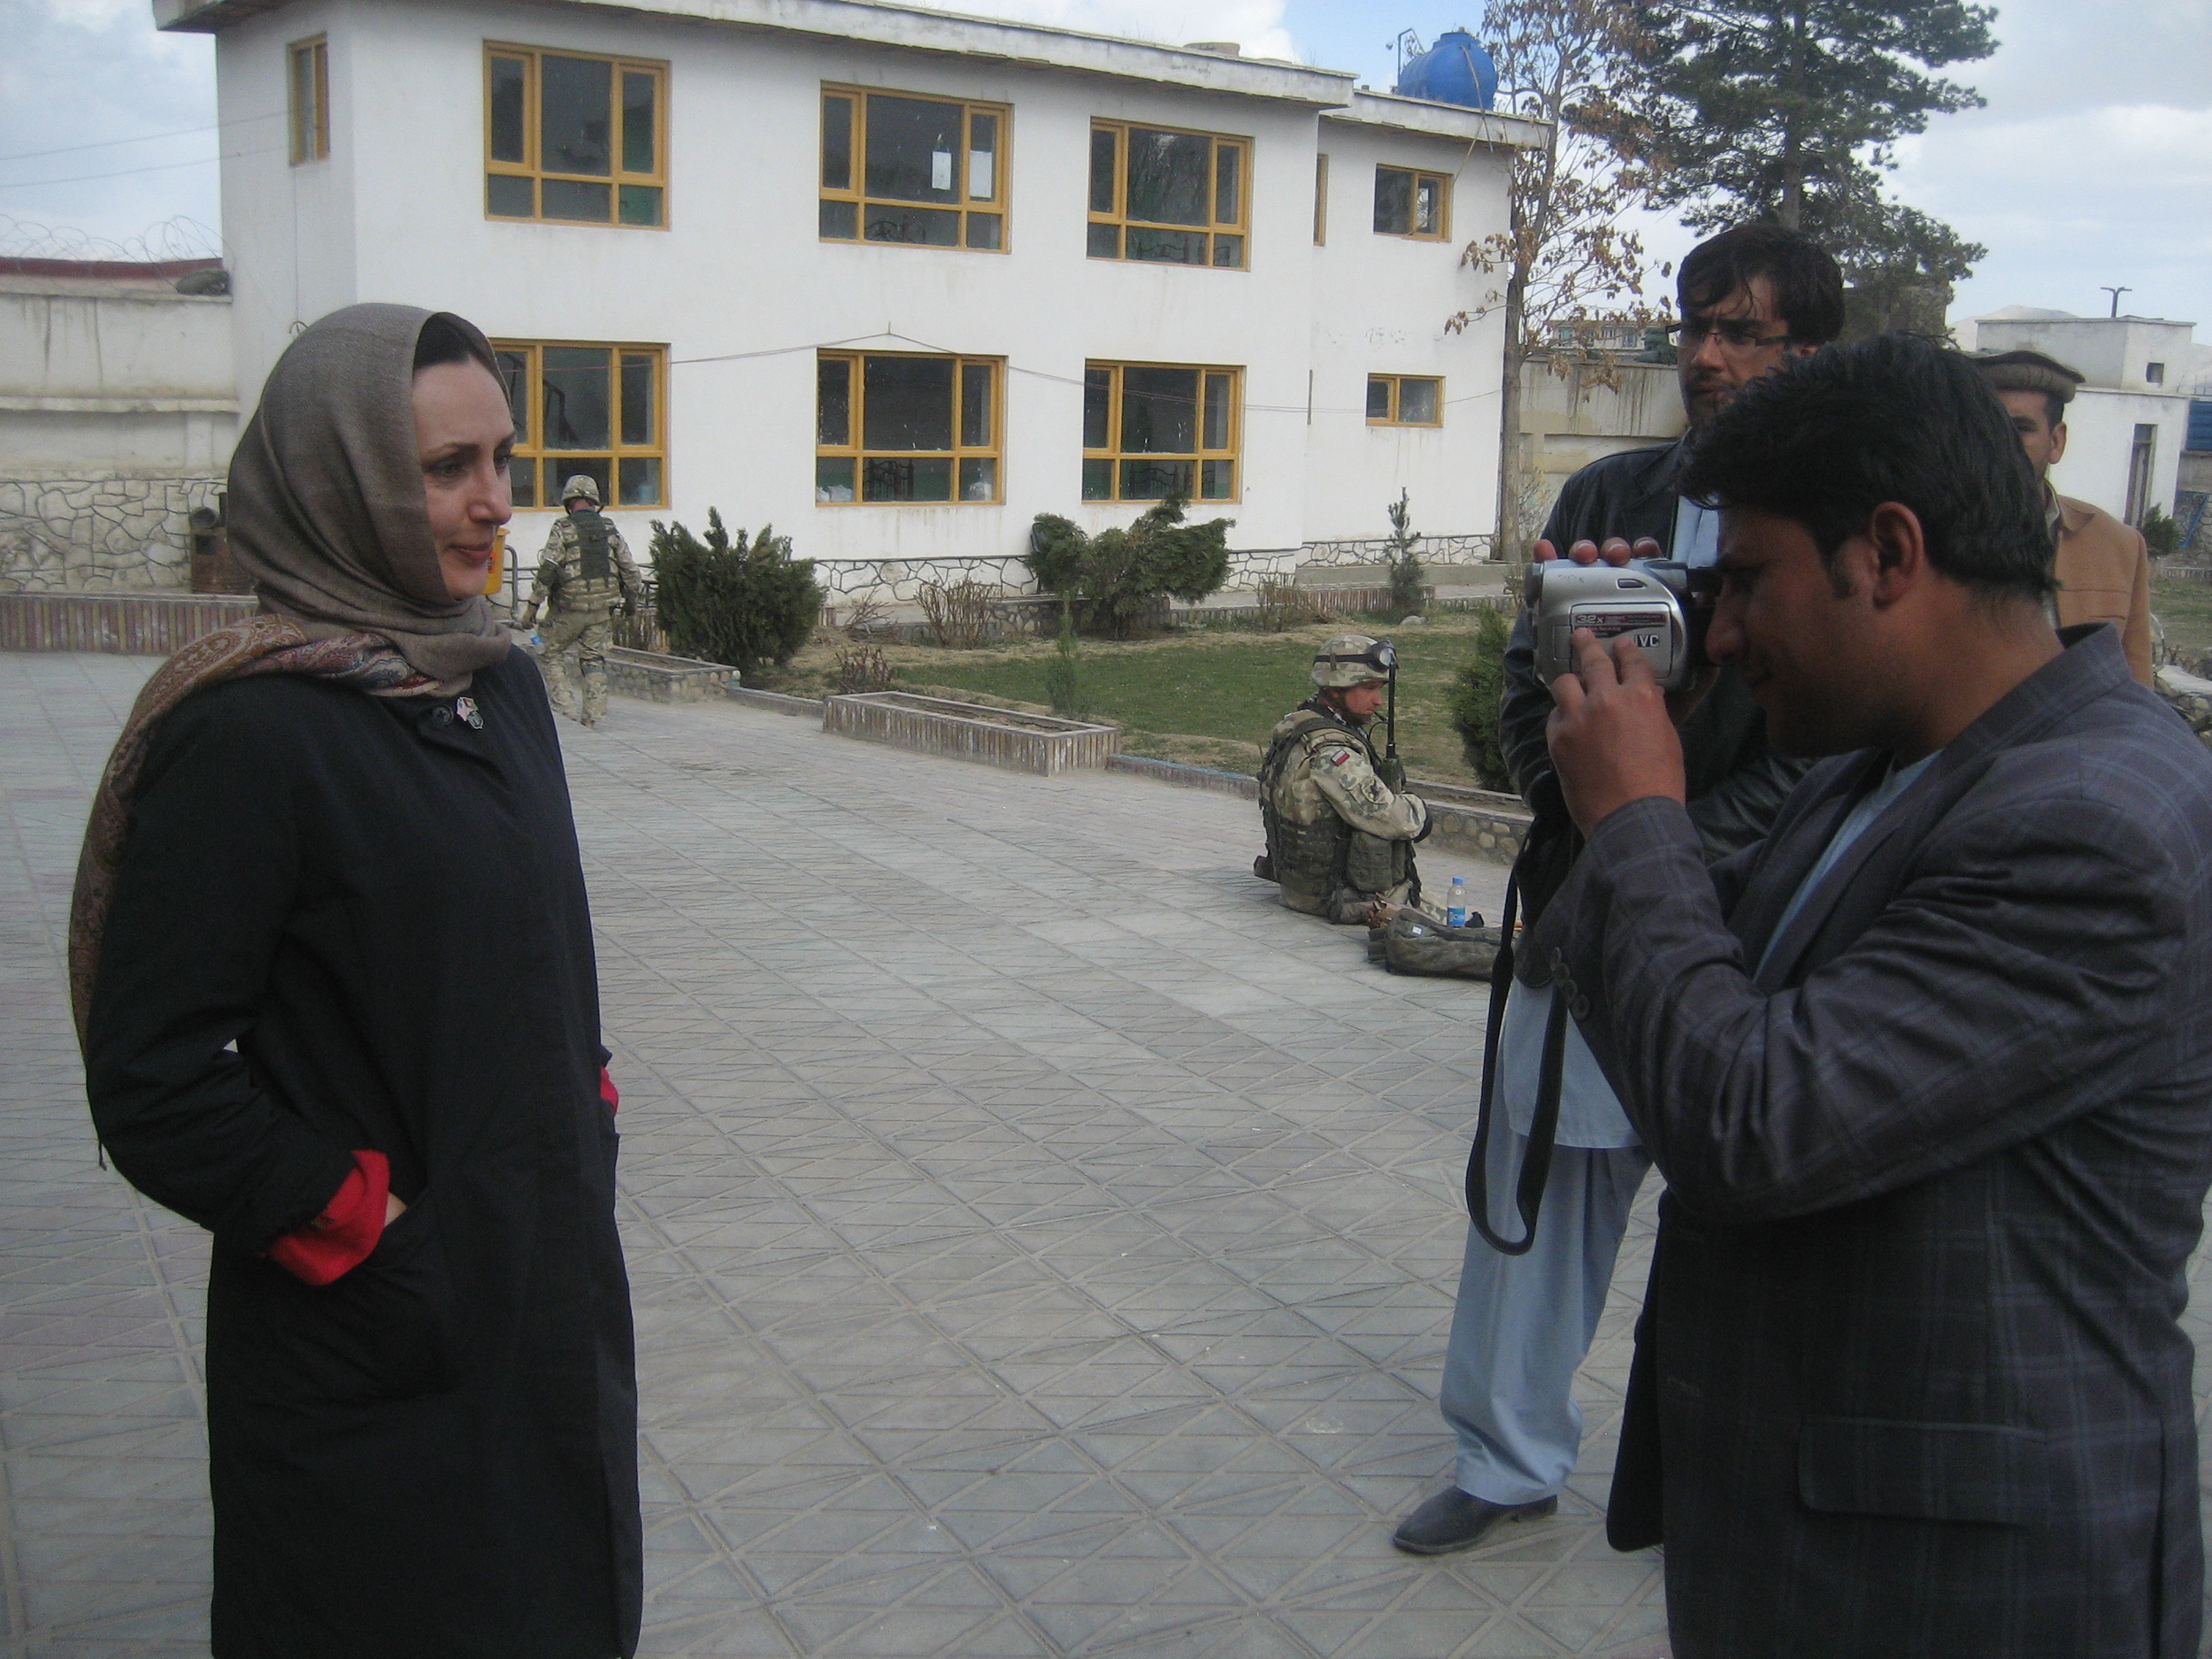 Governor's Compound—Ghazni, Afghanistan